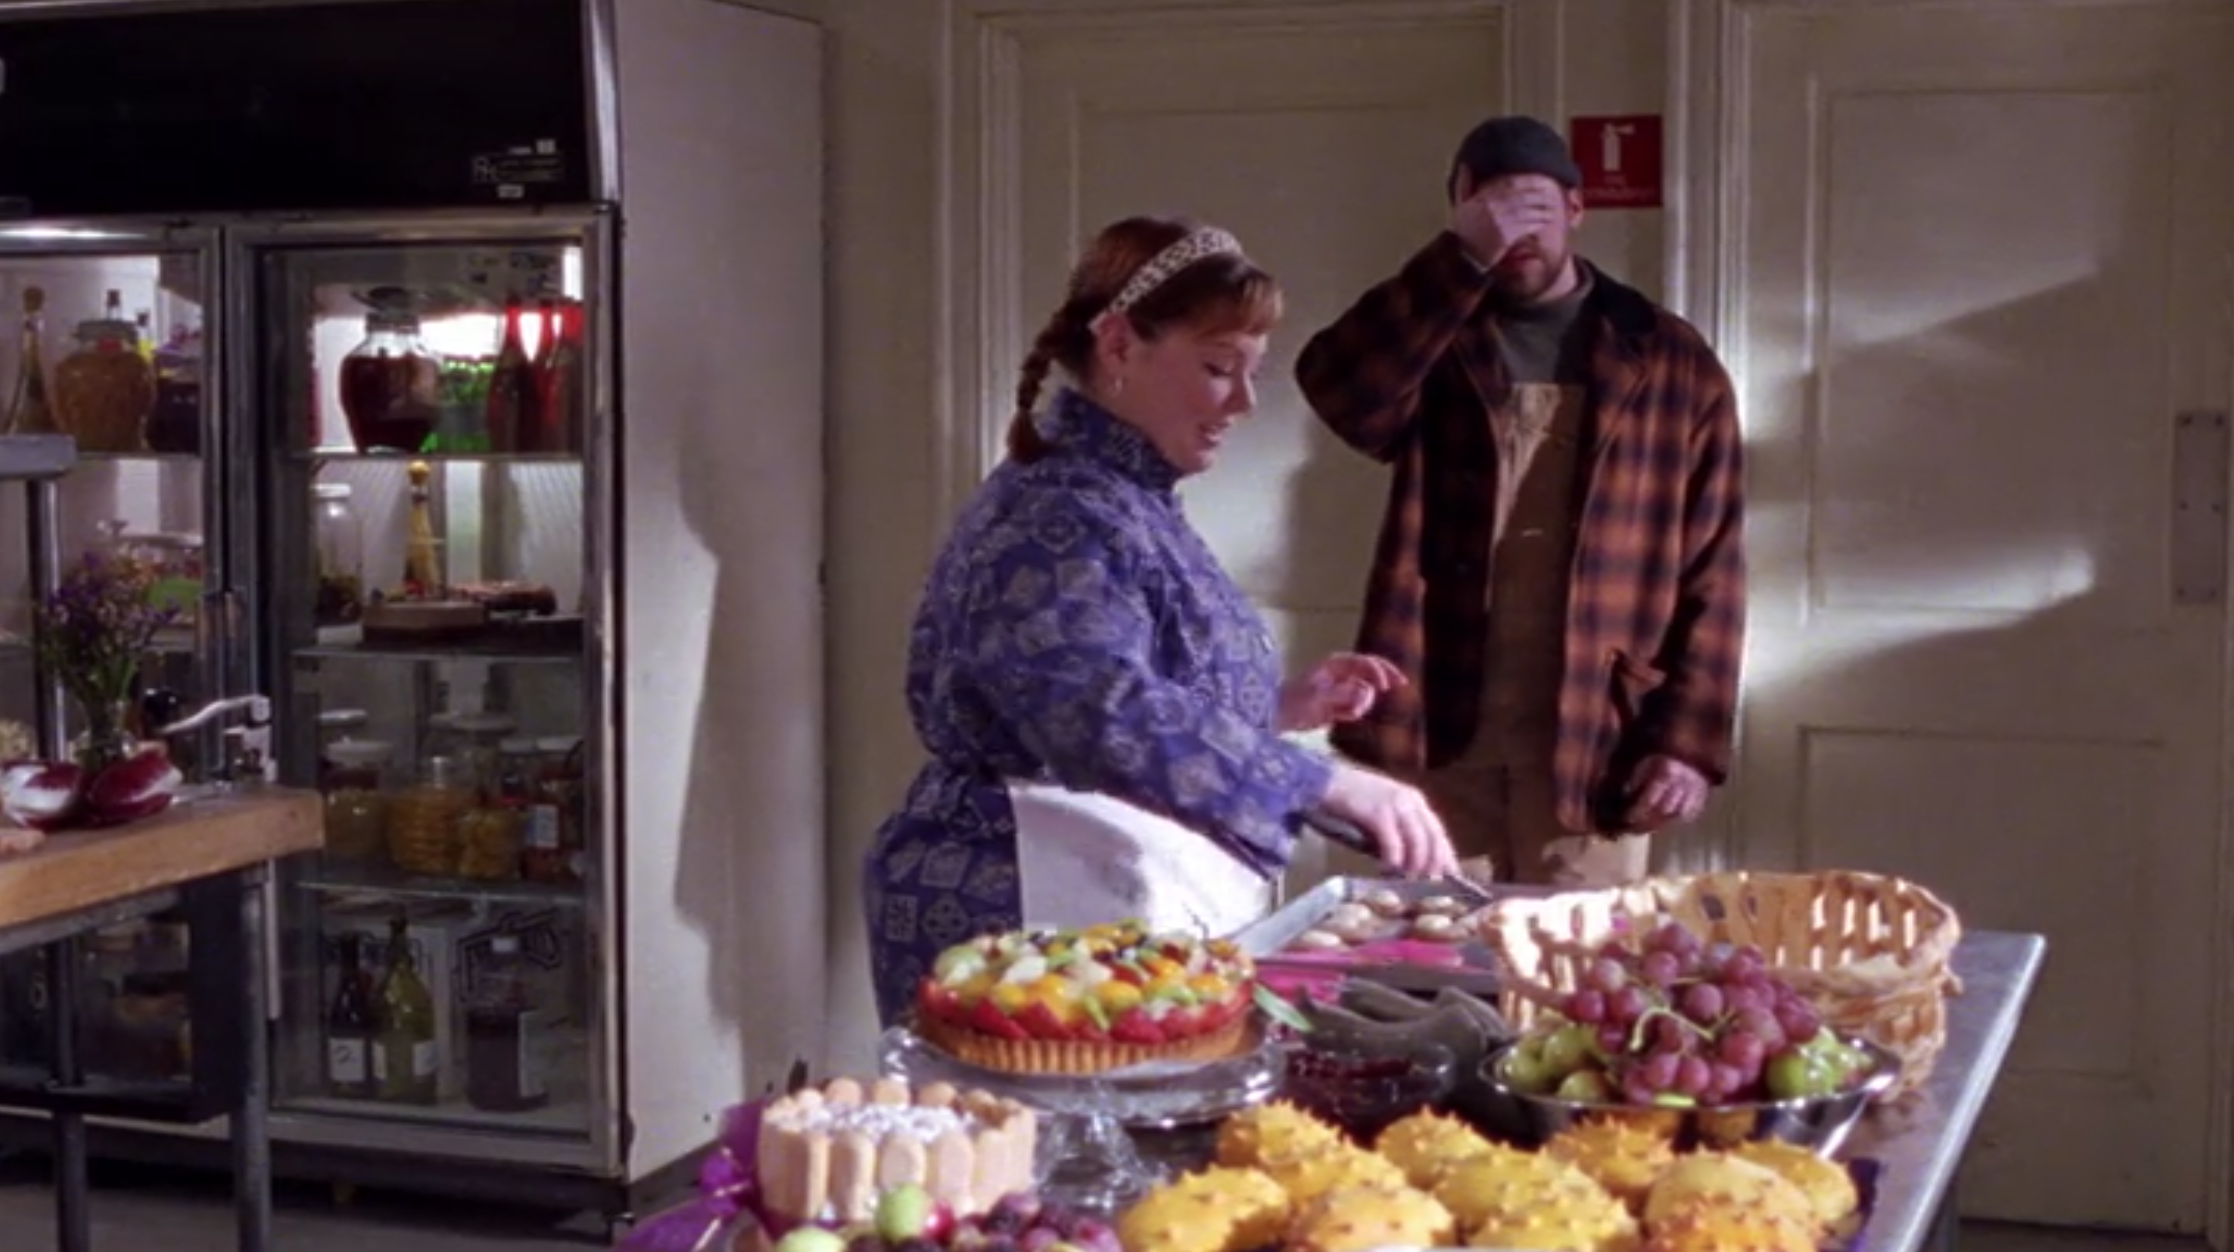 Jackson-Belleville-Fashion-Icon-A-Tisket--A-Tasket-Gilmore-Girls